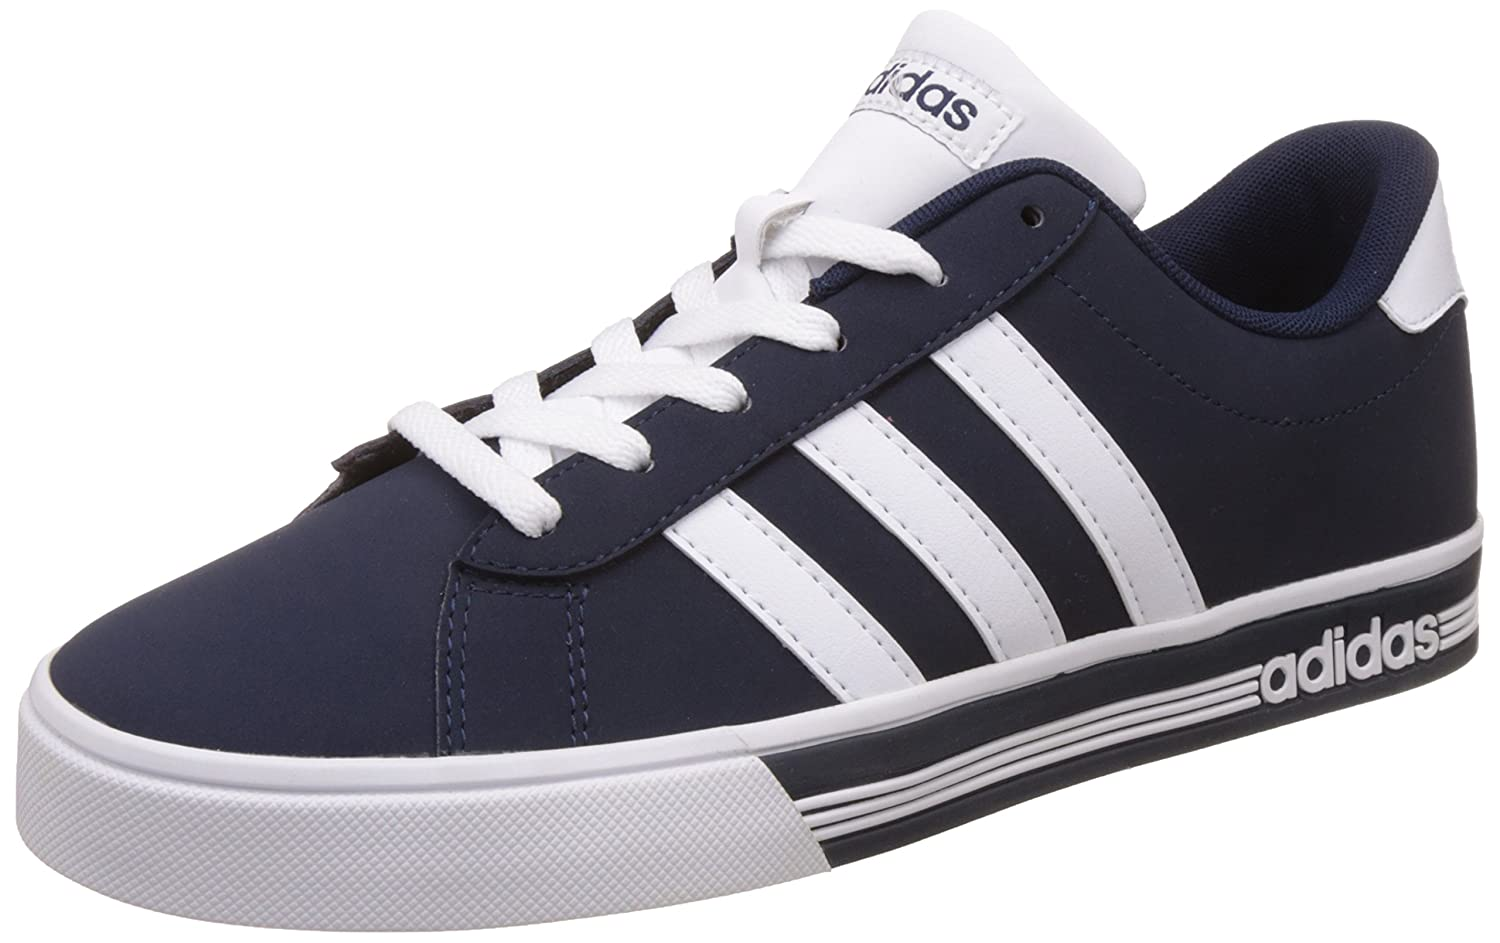 Buy Adidas neo Men's Daily Team Ftwwht and Conavy Sneakers - 6 UK ...